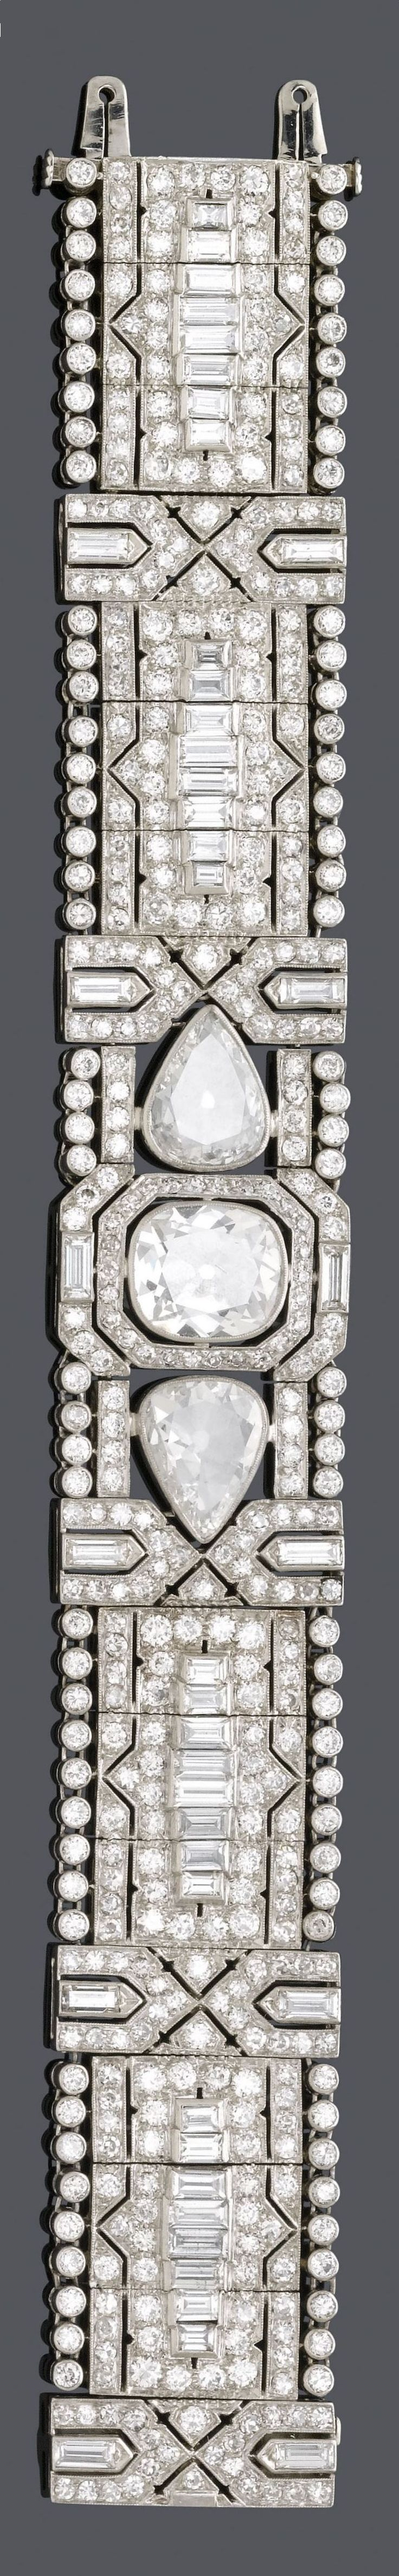 AN ART DECO DIAMOND BRACELET, CIRCA 1930. Set in the centre with one cushion shaped diamond of weighing 2.70 carats and two pear-shaped diamonds, and further set with 44 baguette diamonds, mounted in platinum. #ArtDeco #bracelet